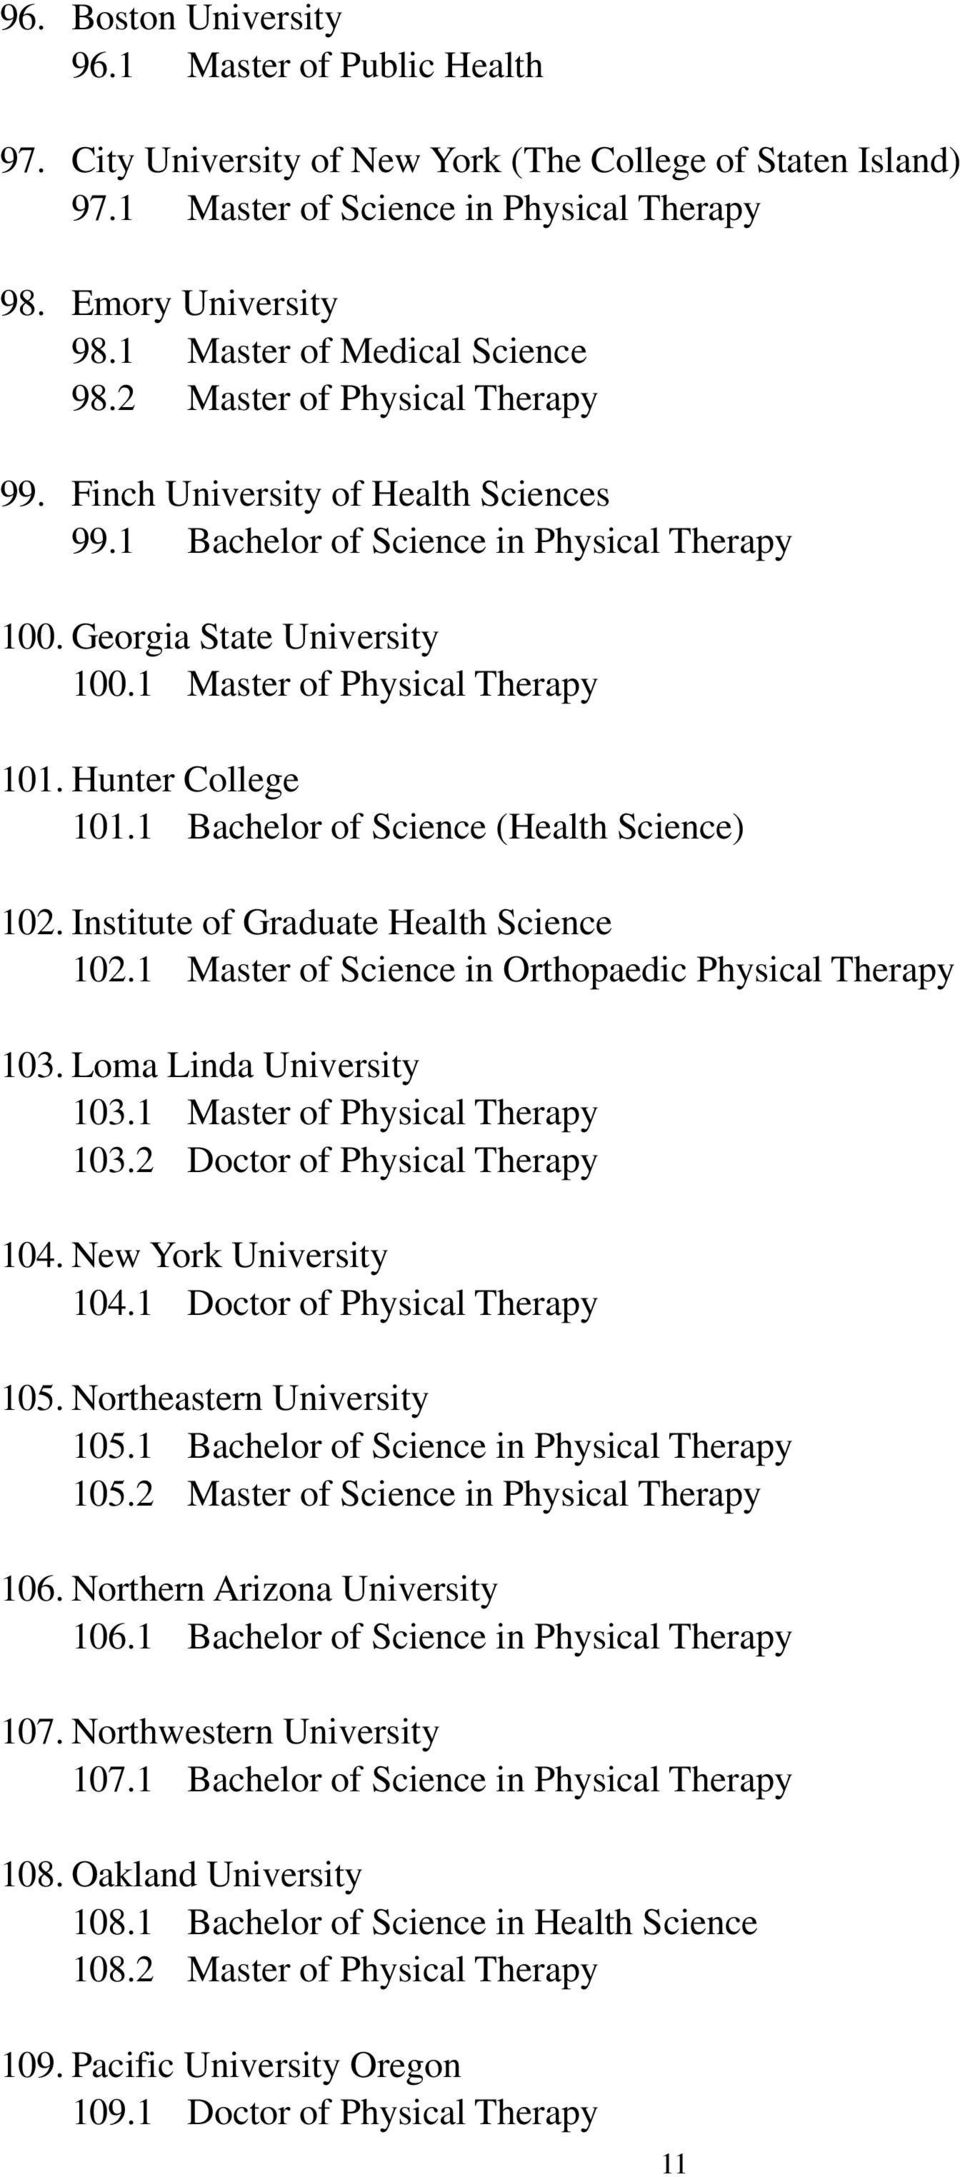 1 Master of Physical Therapy 101. Hunter College 101.1 Bachelor of Science (Health Science) 102. Institute of Graduate Health Science 102.1 Master of Science in Orthopaedic Physical Therapy 103.